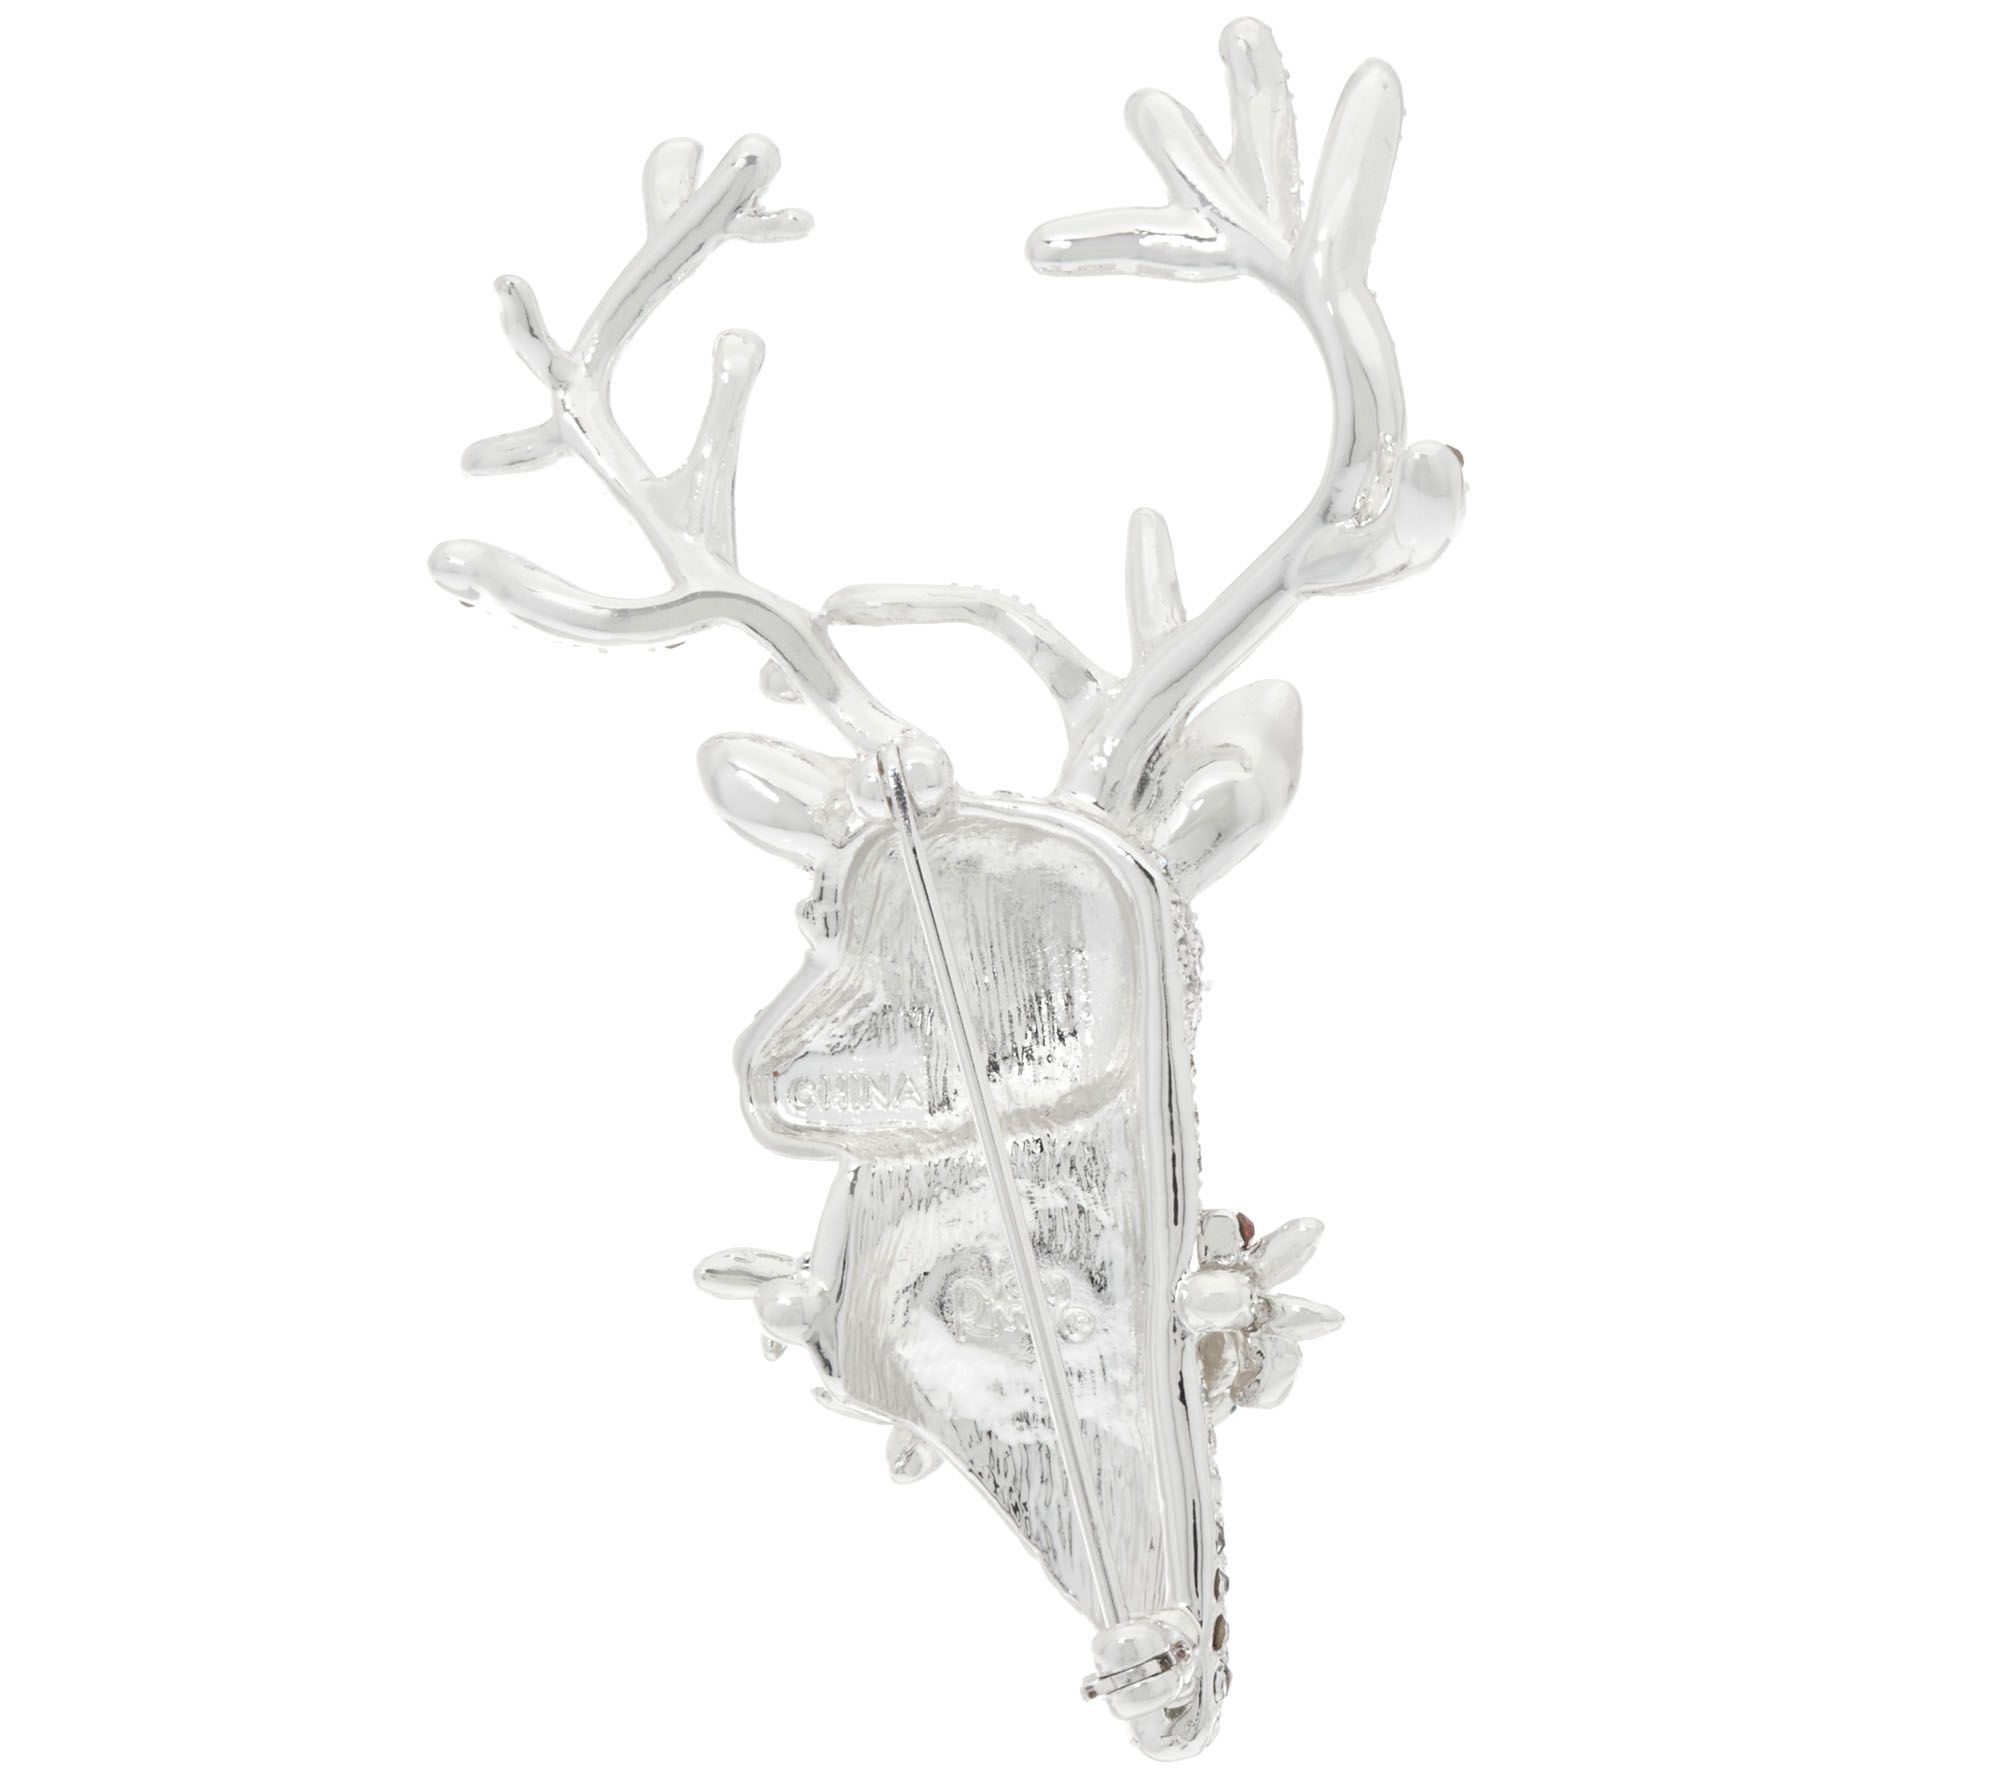 store india deer in pin rain brooch prices amazon long at jewellery horn antique buy online low trendylions dp